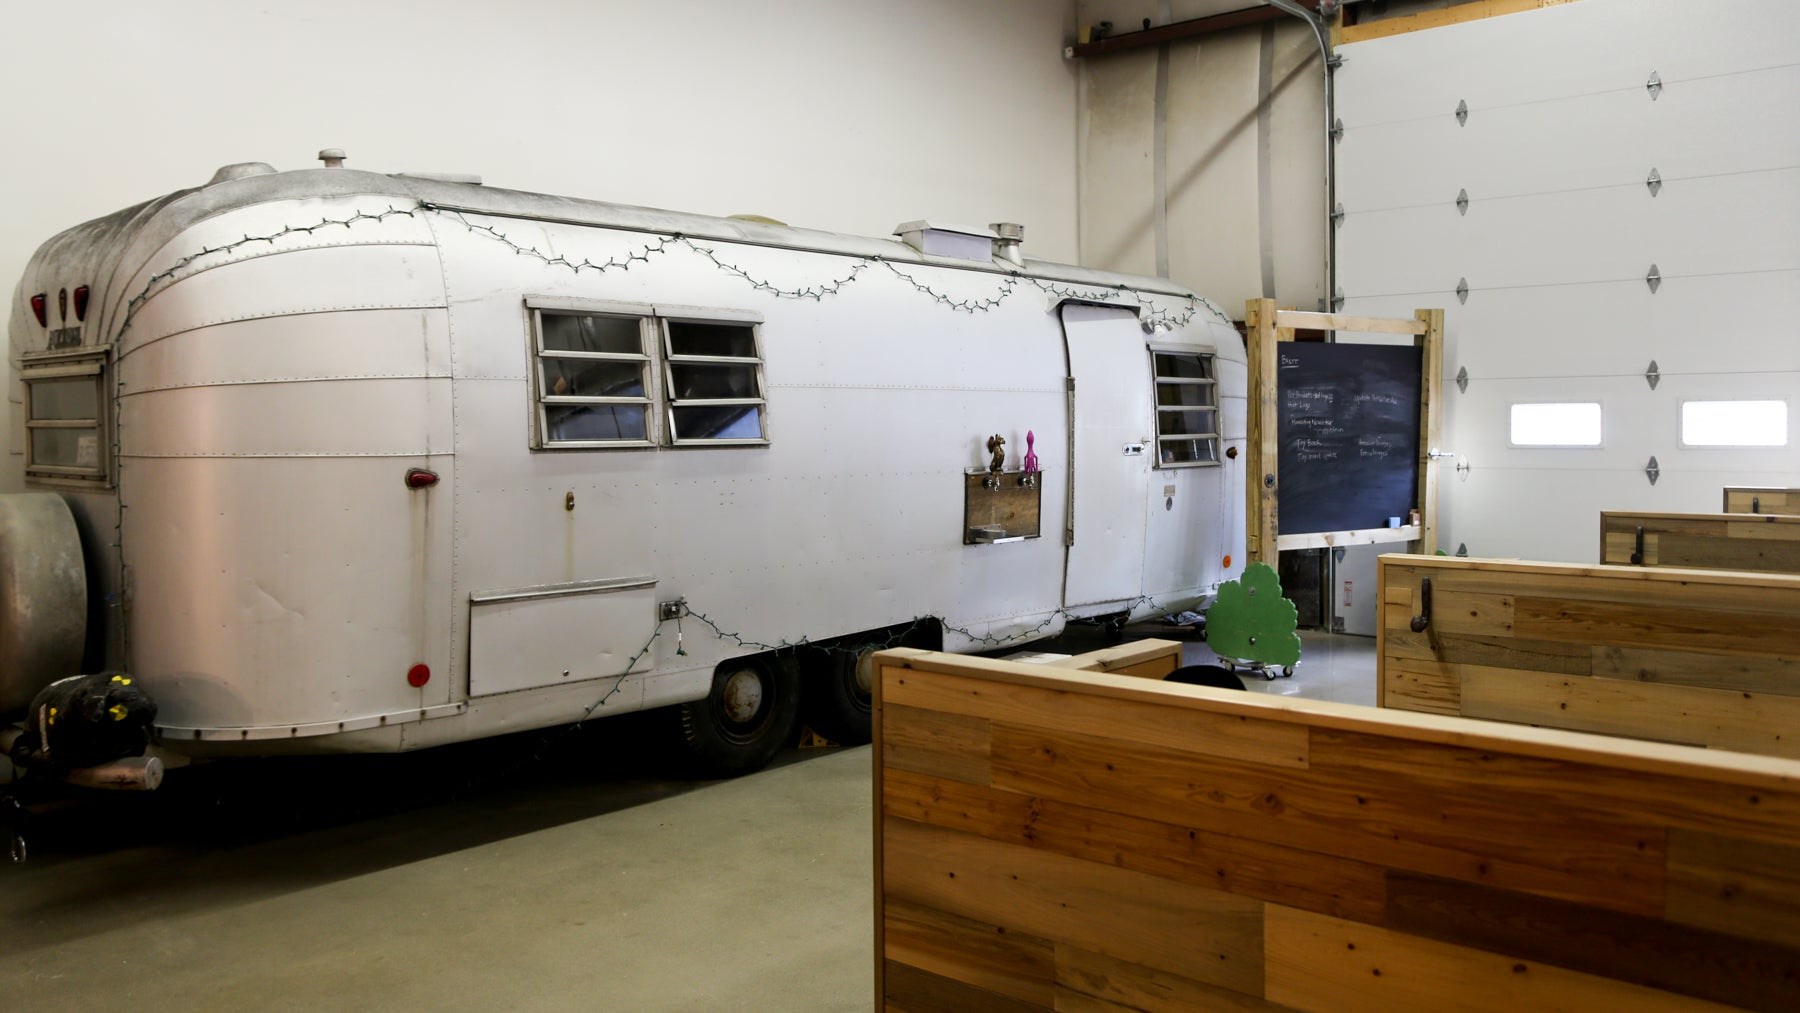 An Airstream that Kitter wants to turn into an office.